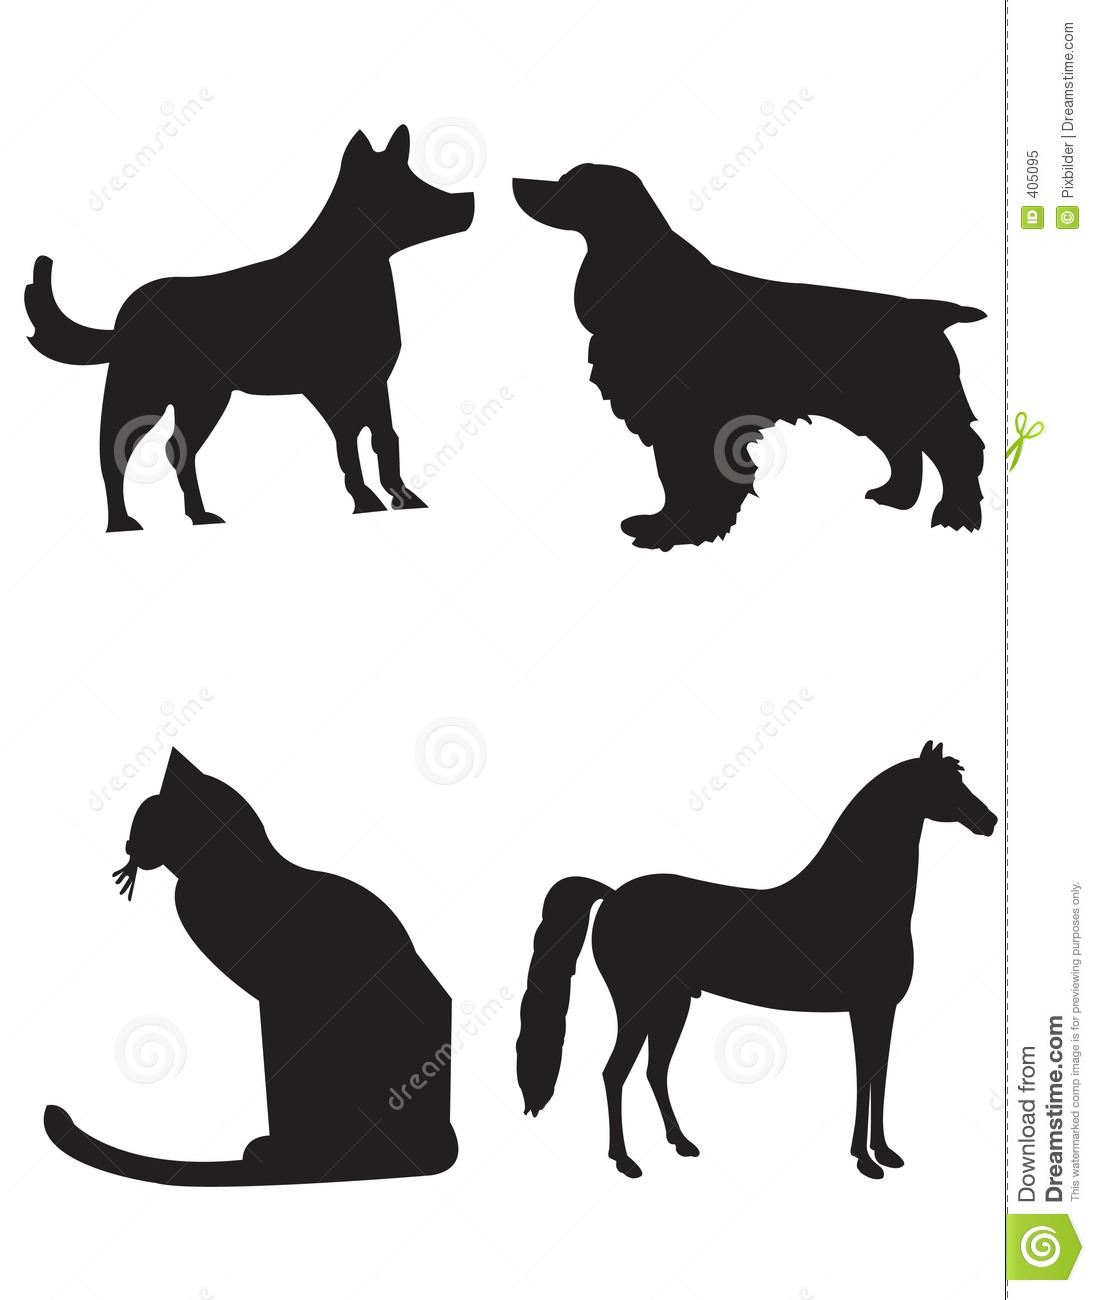 Dog tail clipart svg library download Clipart dog and cat tails - ClipartFest svg library download